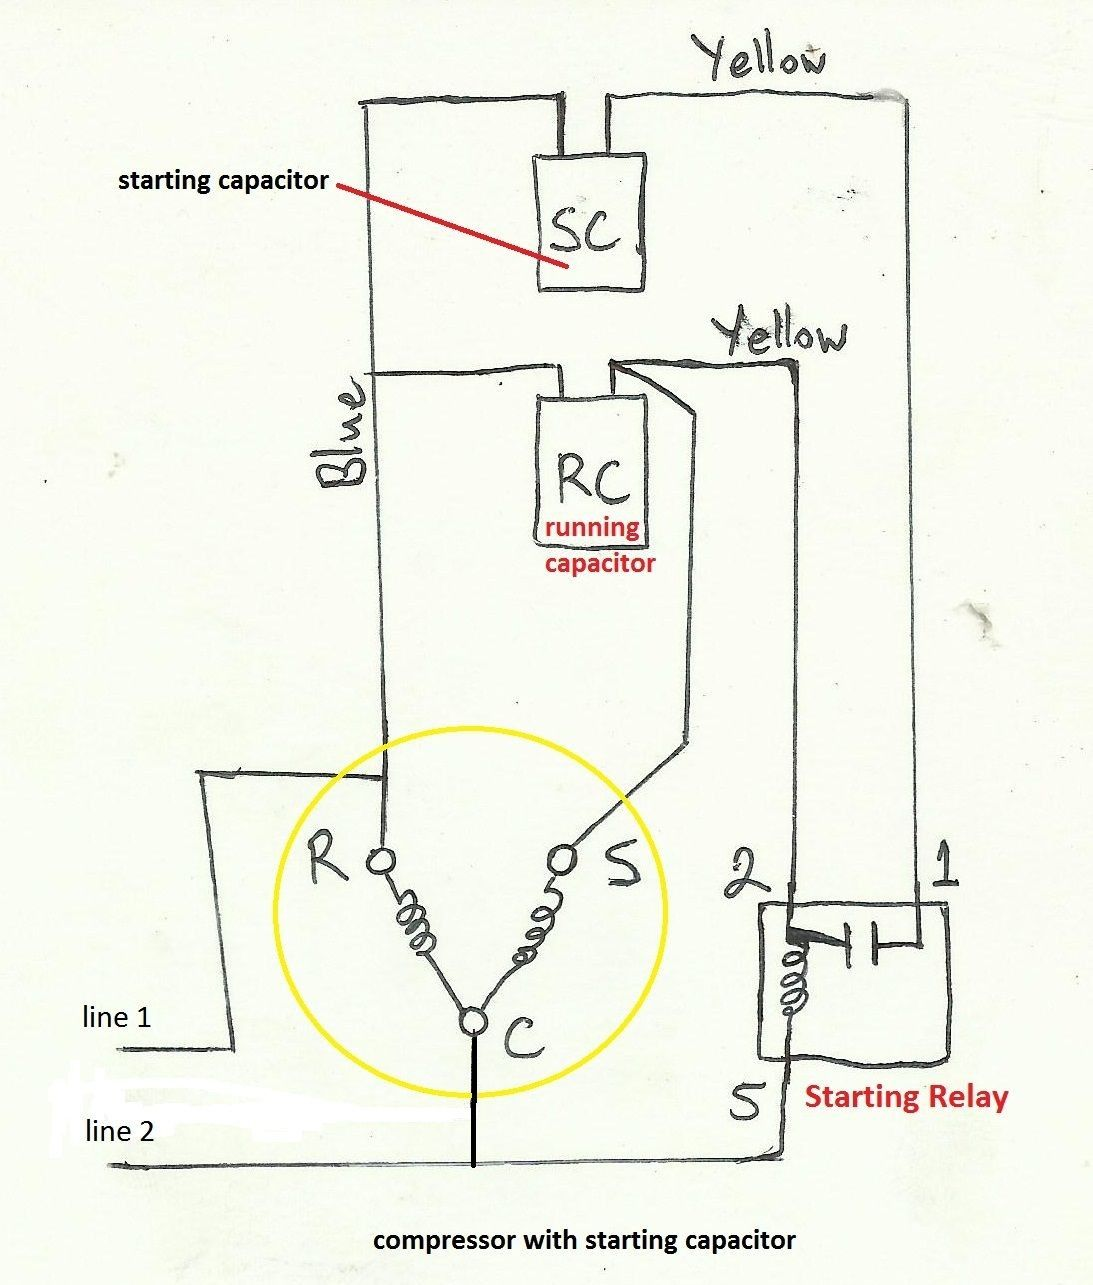 Unique Single Phase Capacitor Start Capacitor Run Motor Wiring Diagram |  Electrical wiring diagram, Electrical circuit diagram, Compressor | Refrigerator Relay Wiring Diagram |  | Pinterest